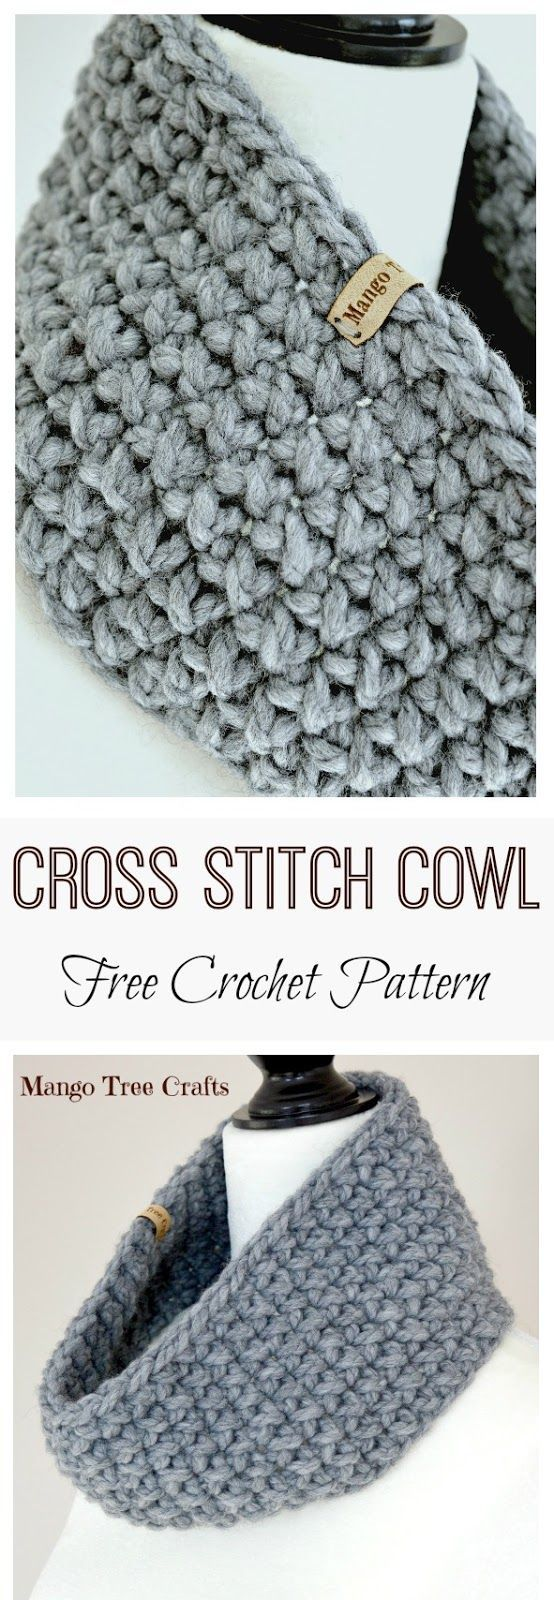 Mango Tree Crafts: Bulky Cross Stitch Cowl Free Crochet Pattern